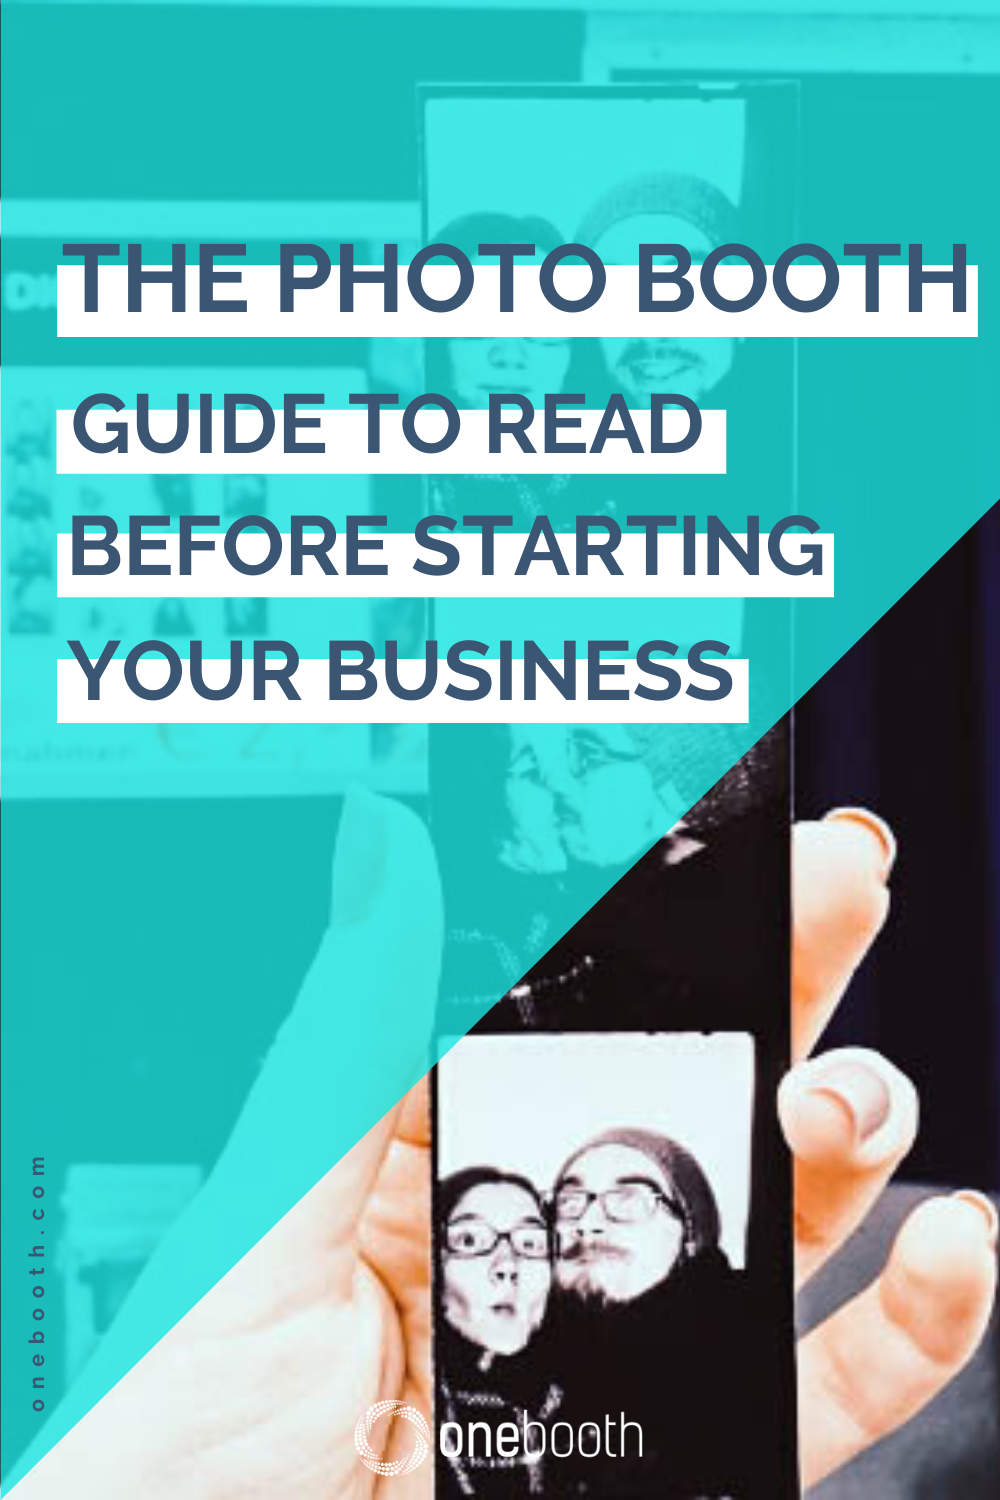 The Ultimate Photo Booth Guide To Read Before Starting Your Business